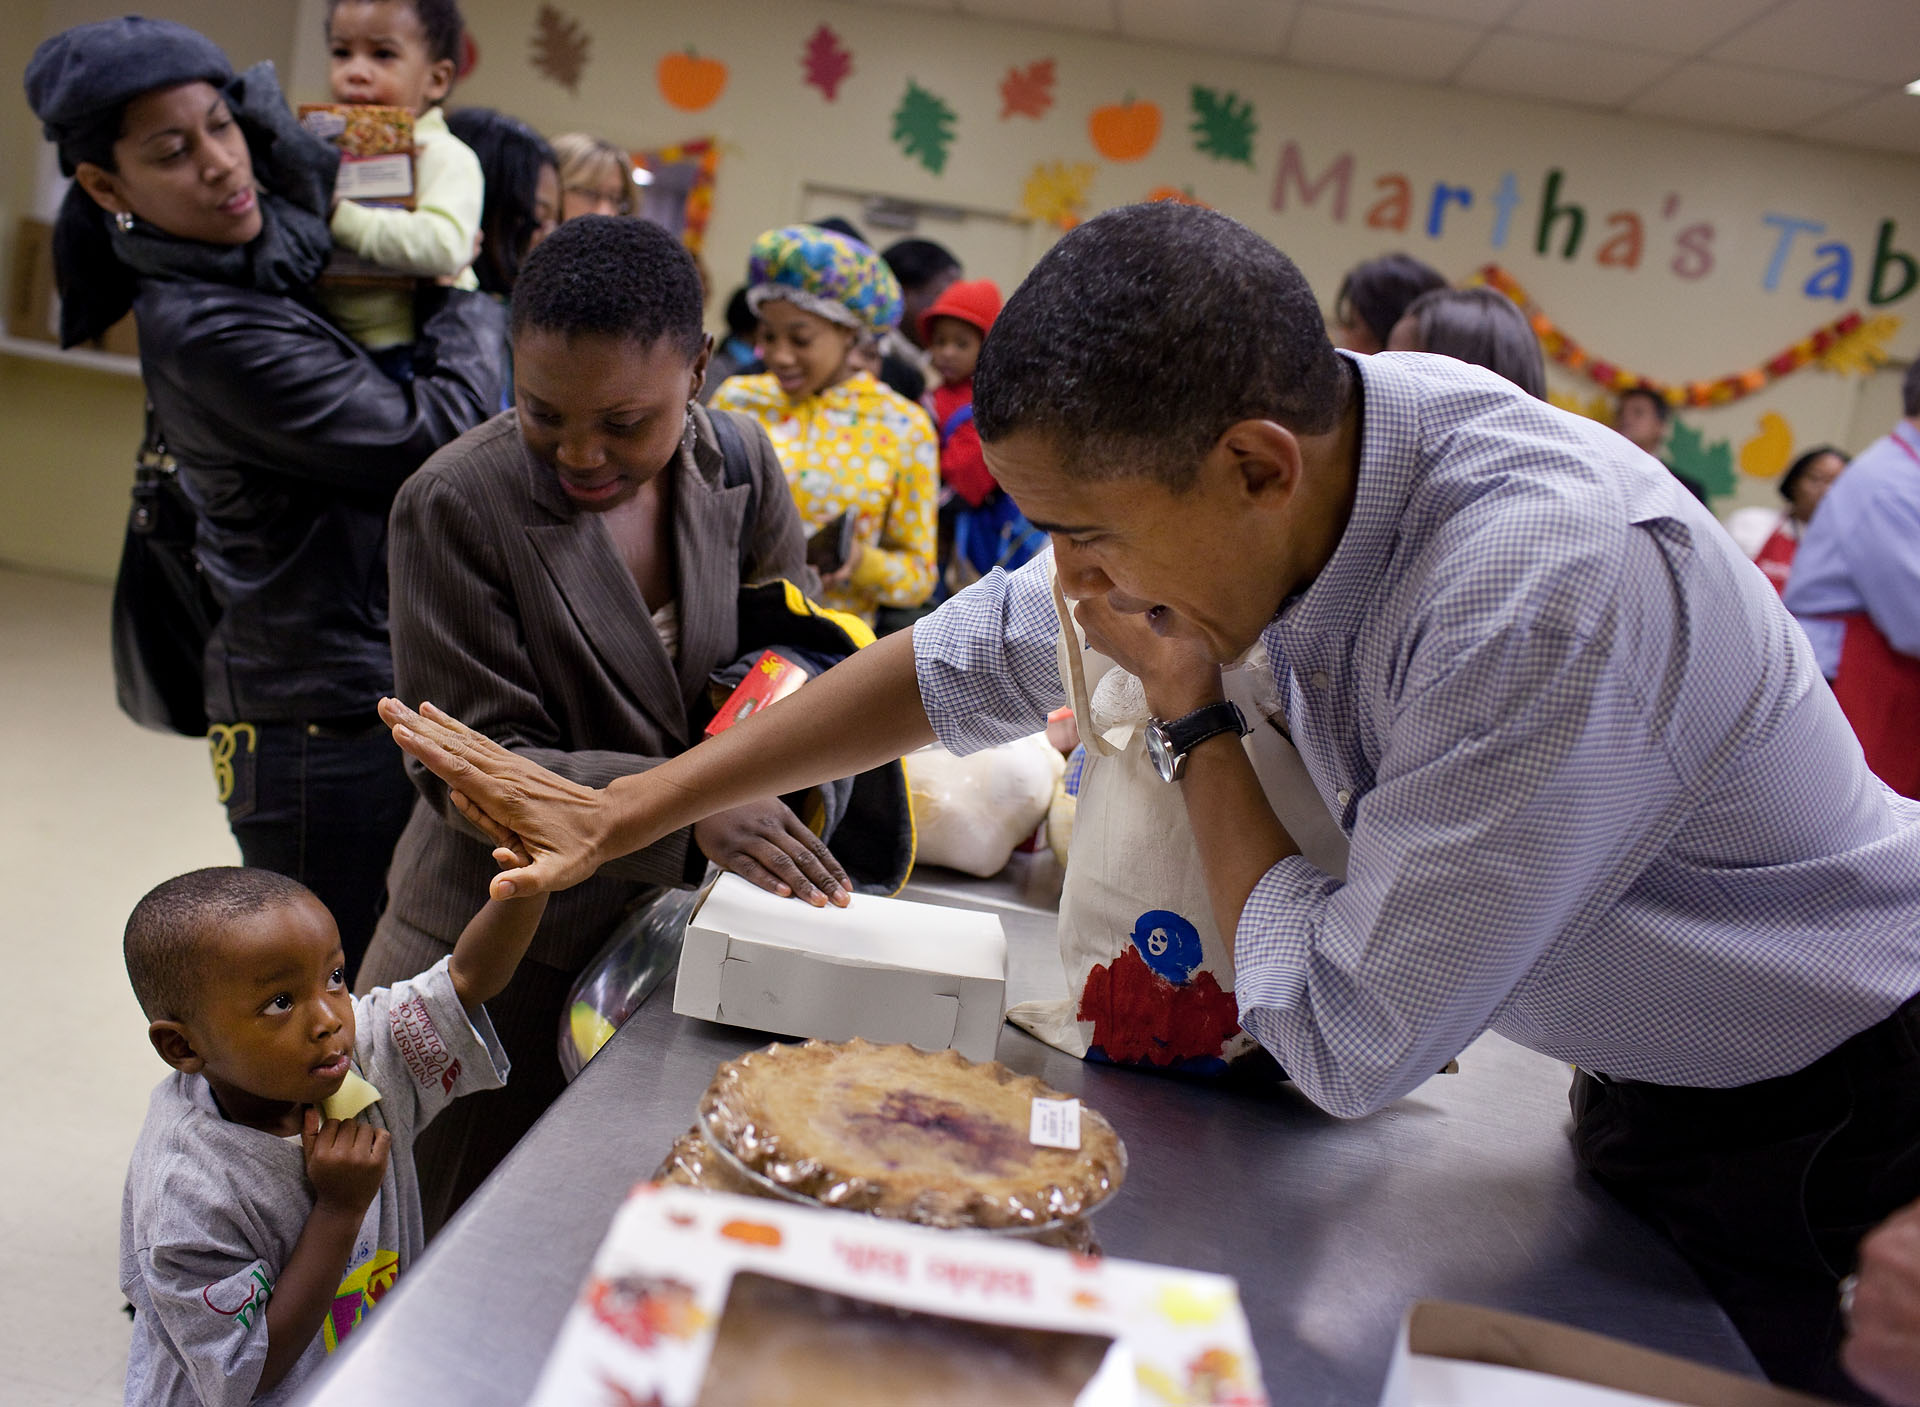 President Barack Obama gets a high five at Martha's Table